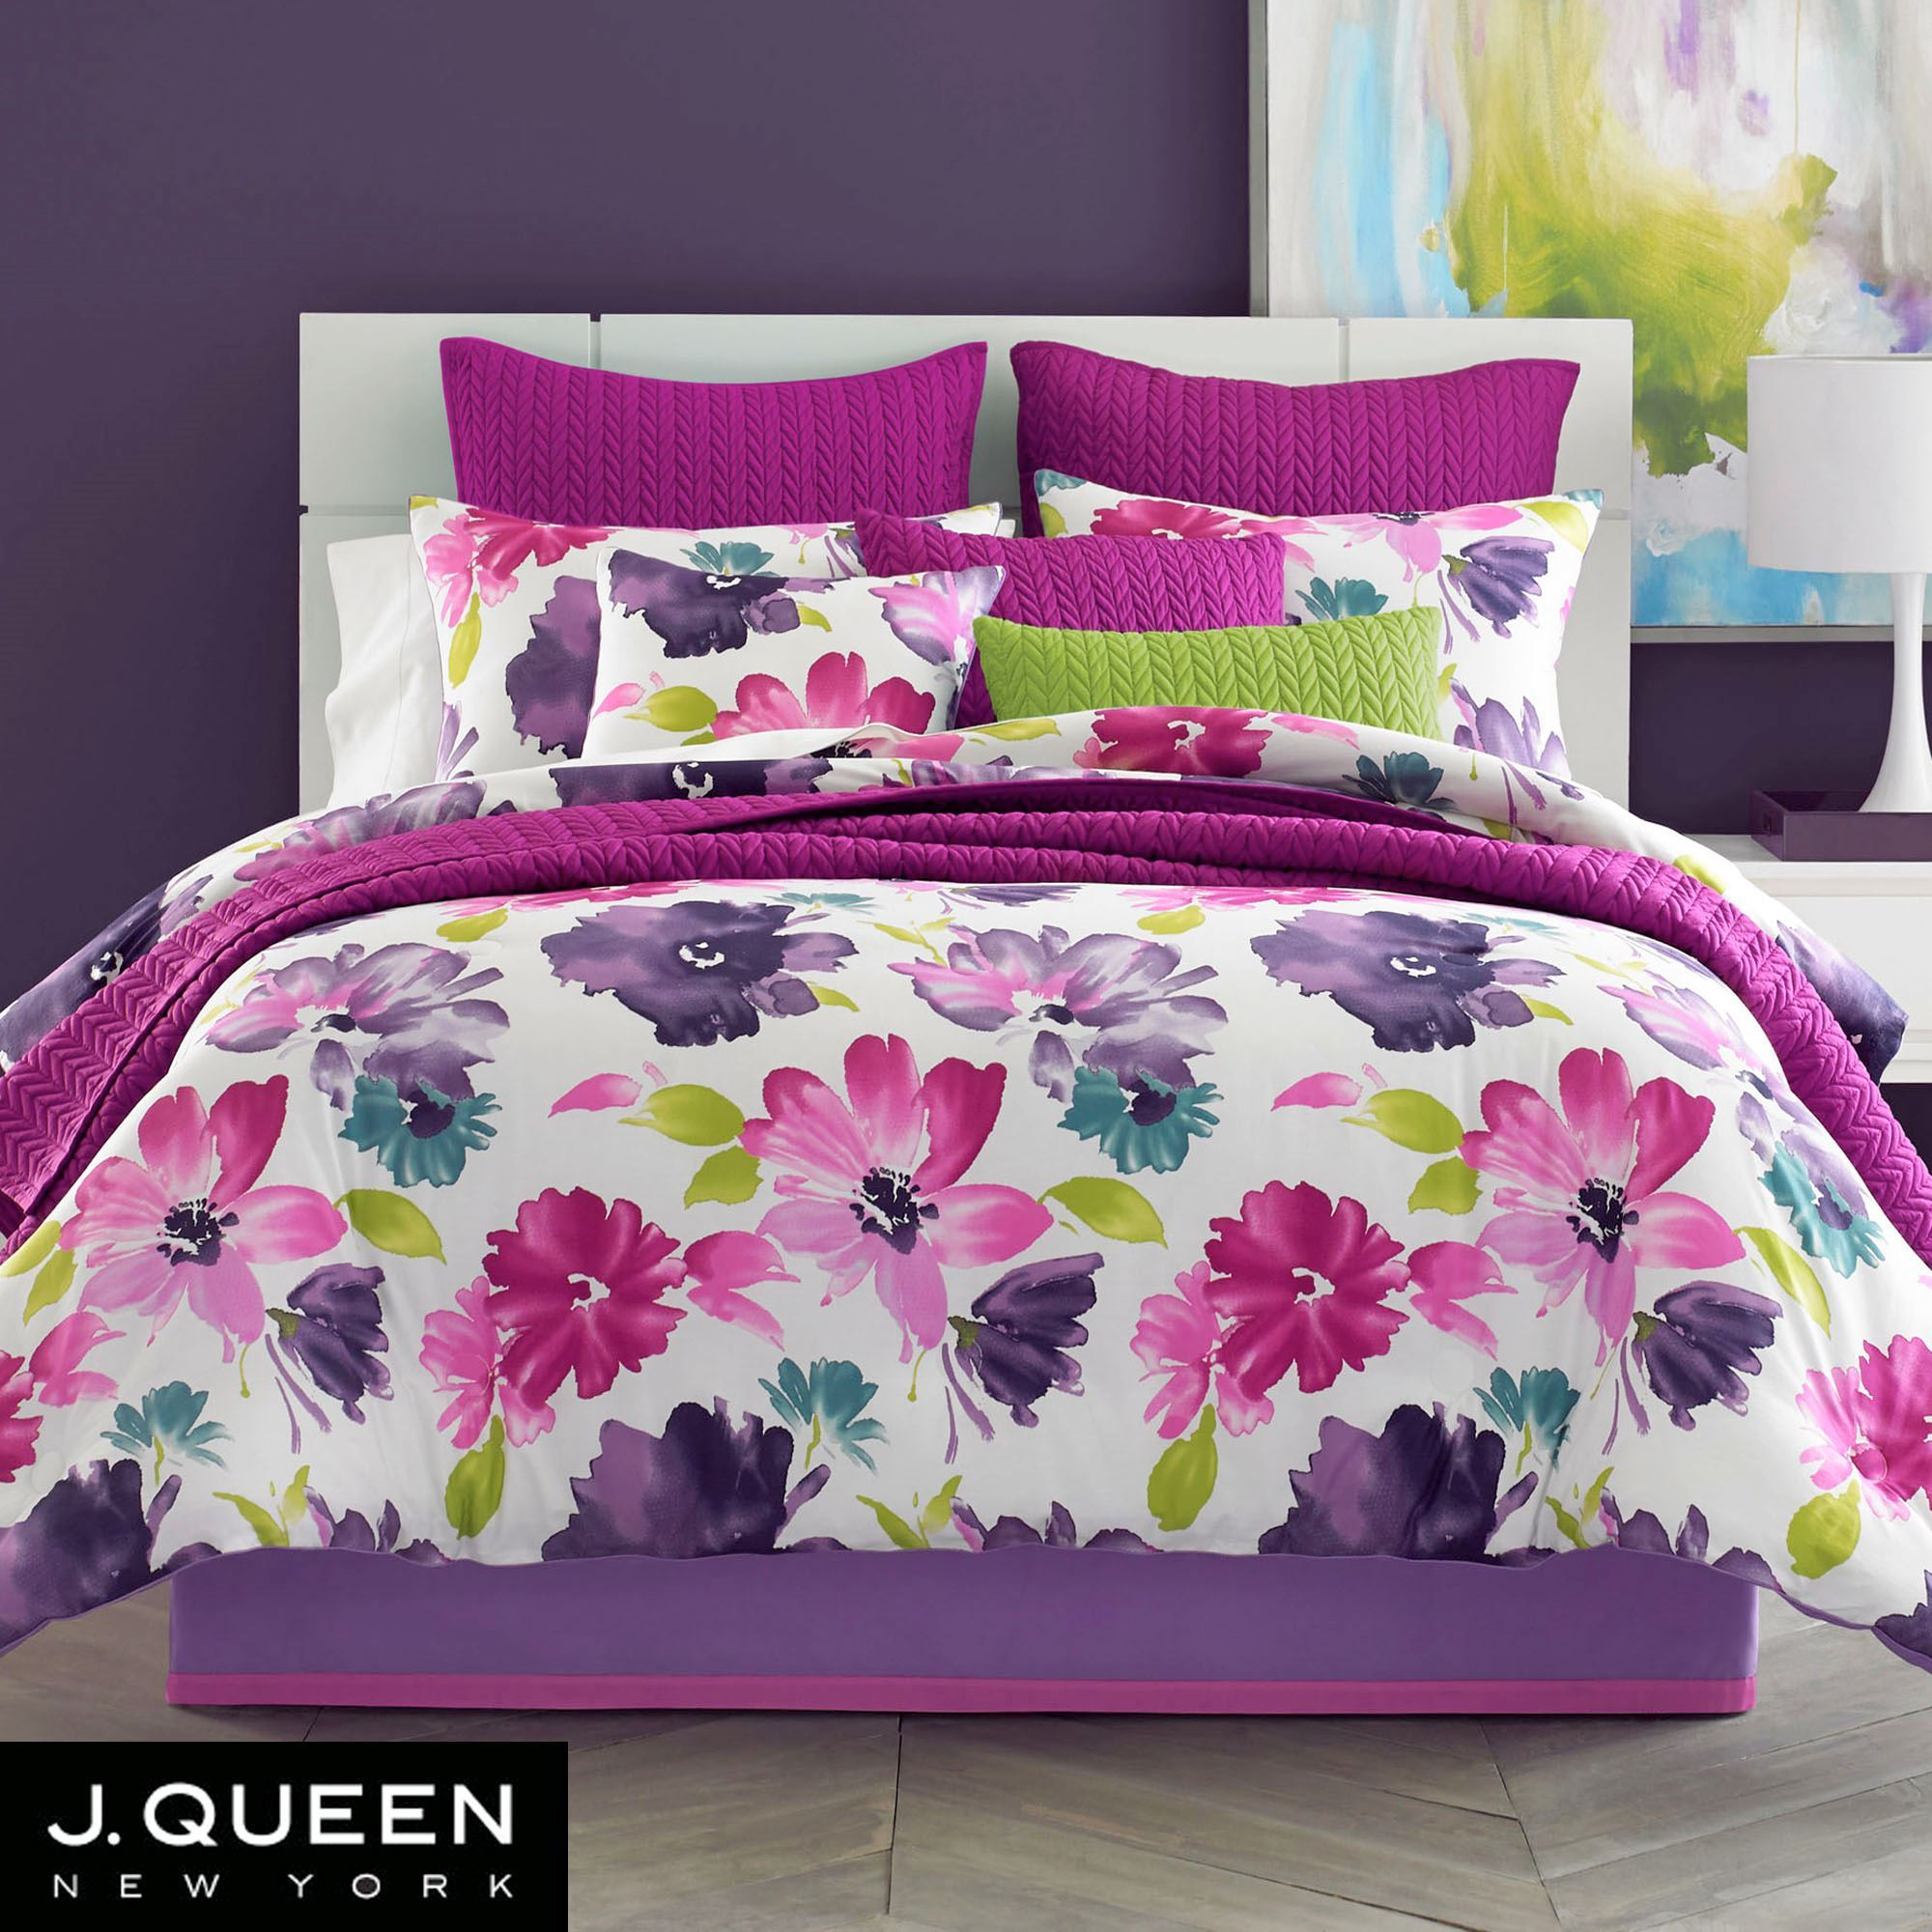 comforter king of size beauteous sets at large queen piquant oversized bedspreads quilts and uk collections oversizedking bedding bbkkjk